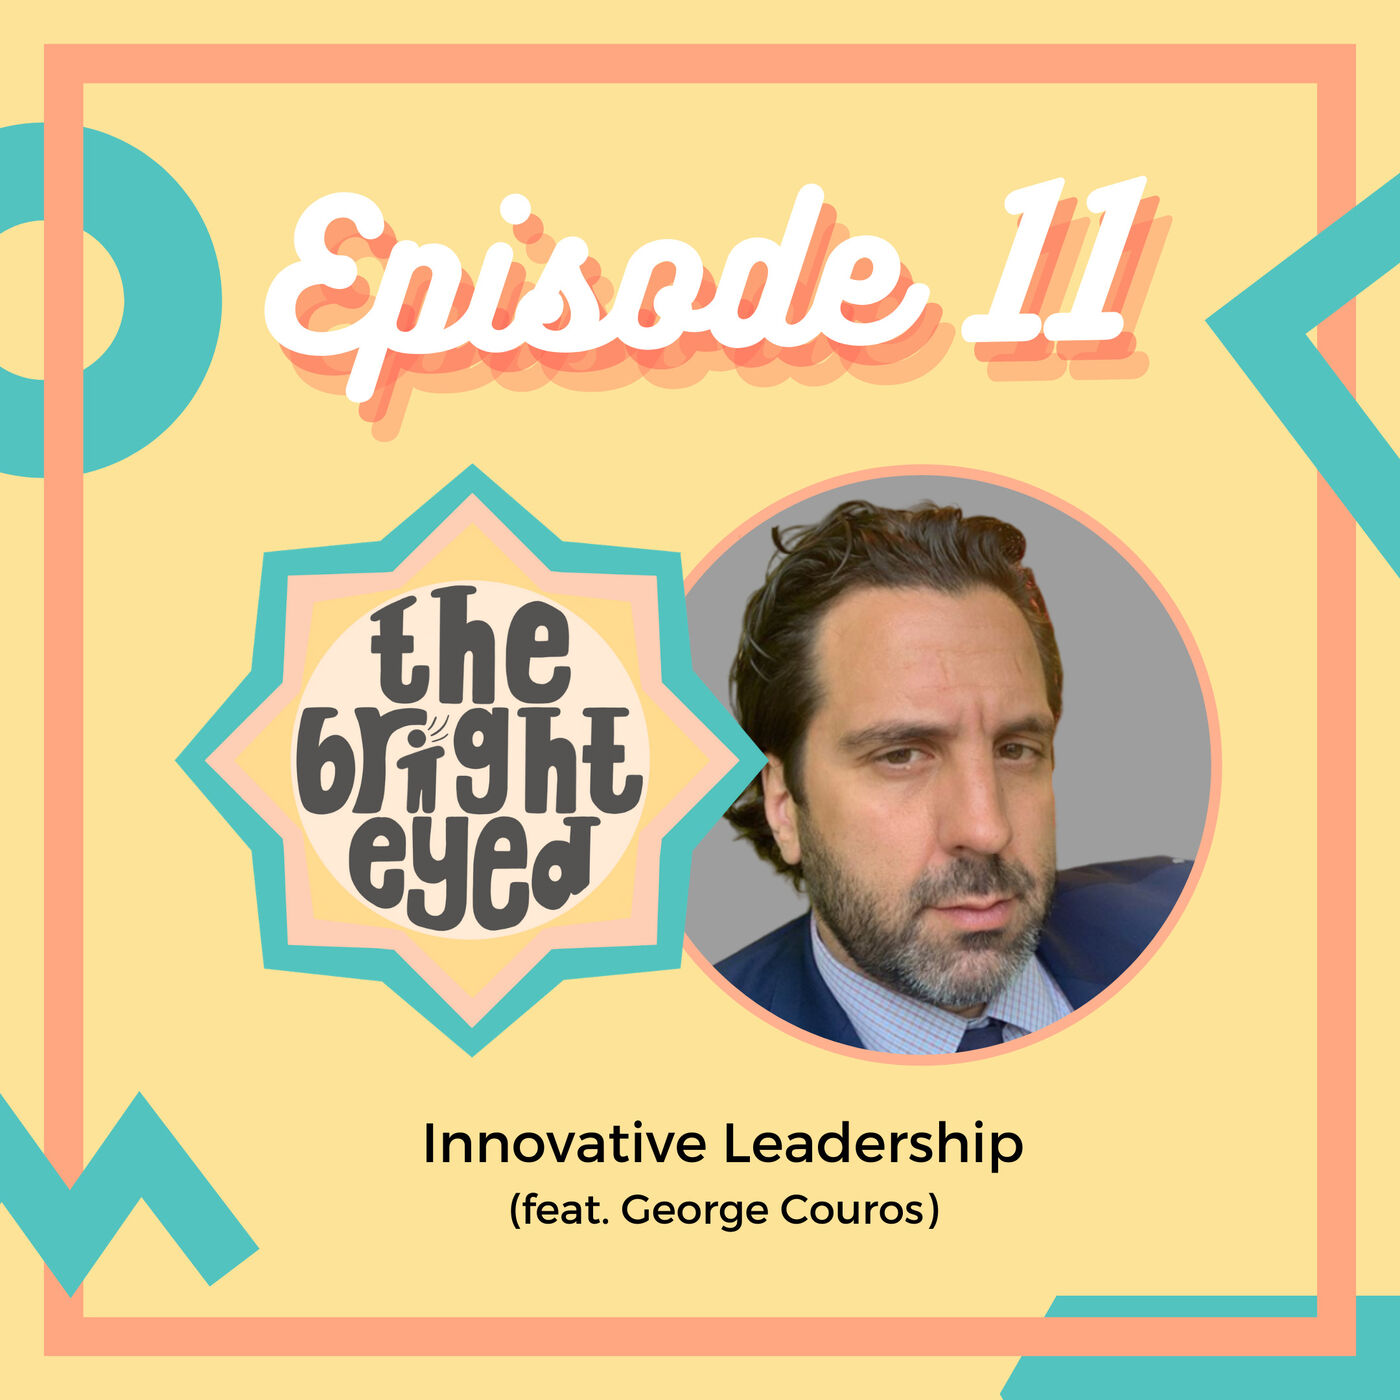 Innovative Leadership (feat. George Couros)